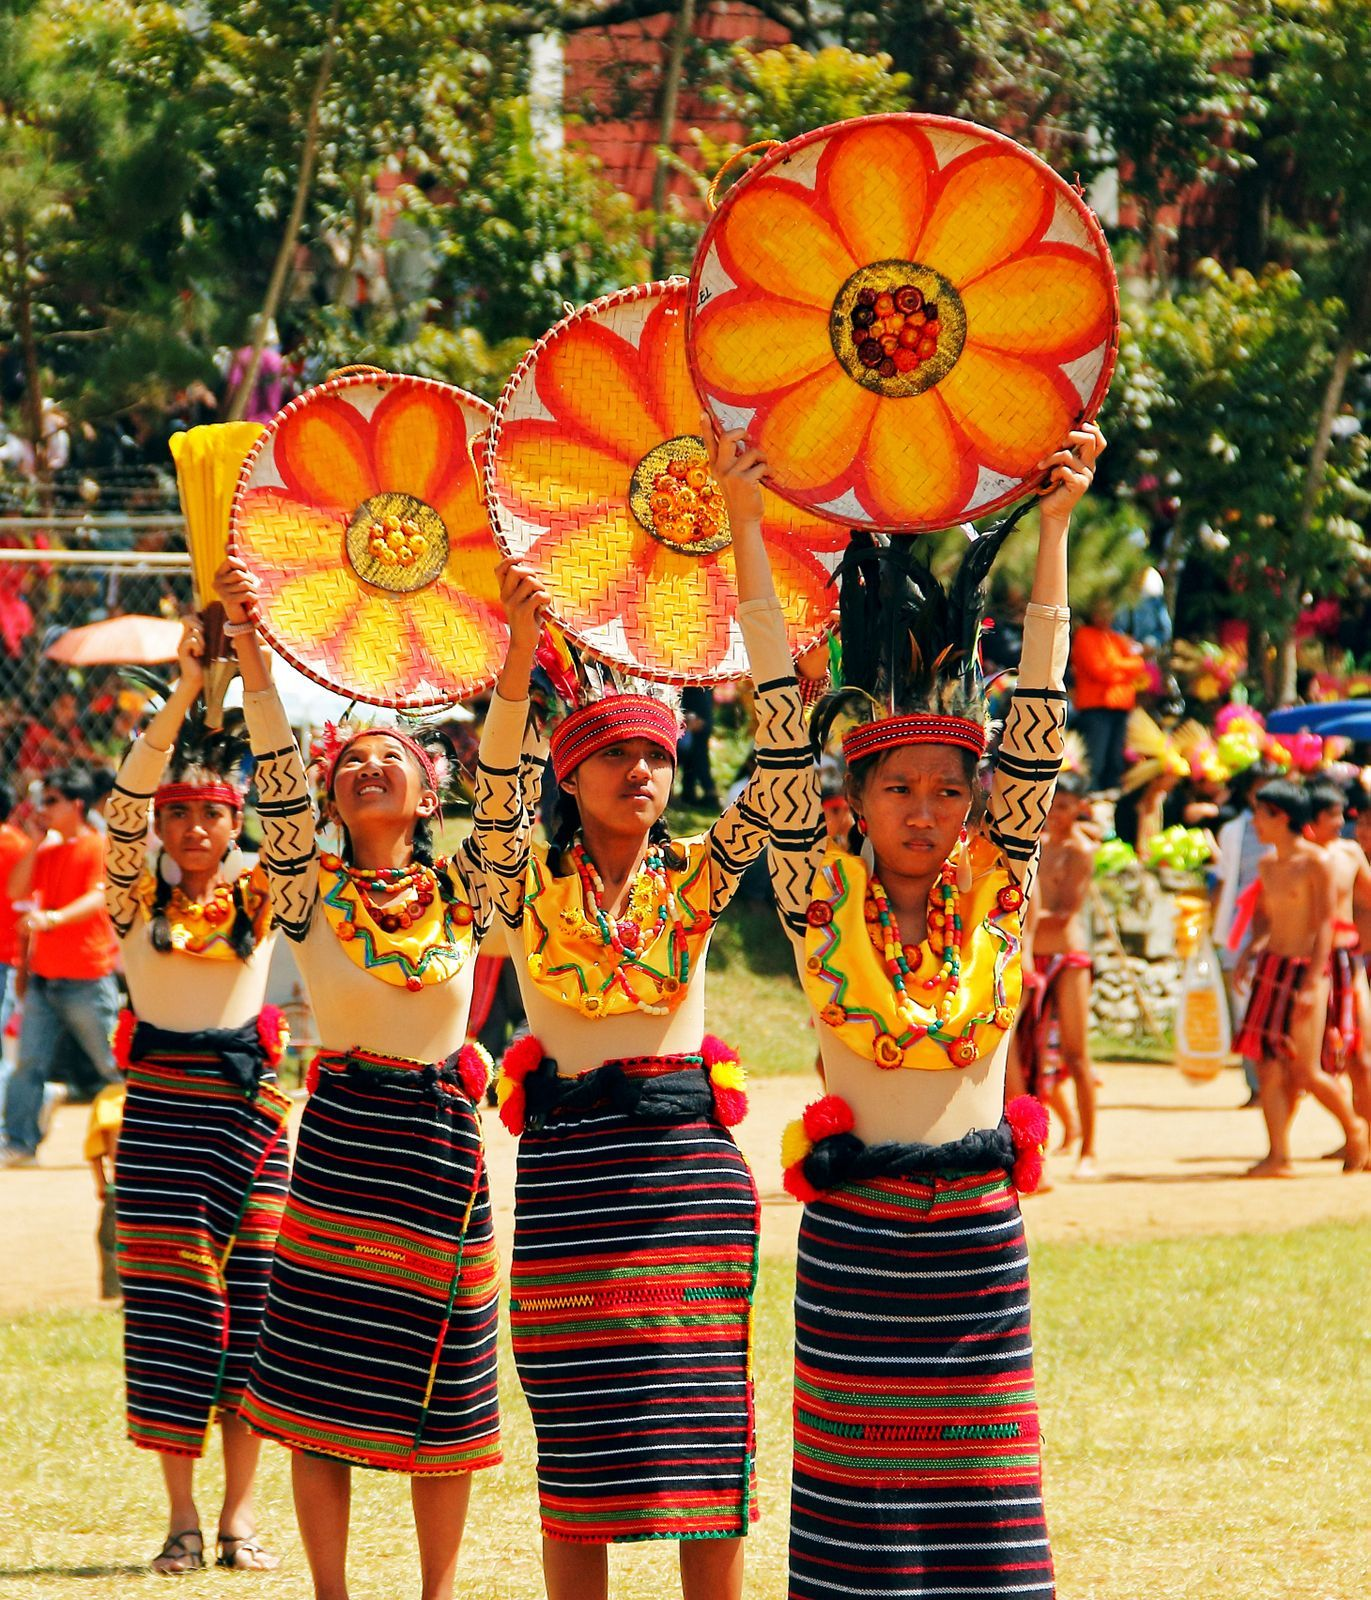 Pin By Kylie De Castro On Traveler: Fun Philippines